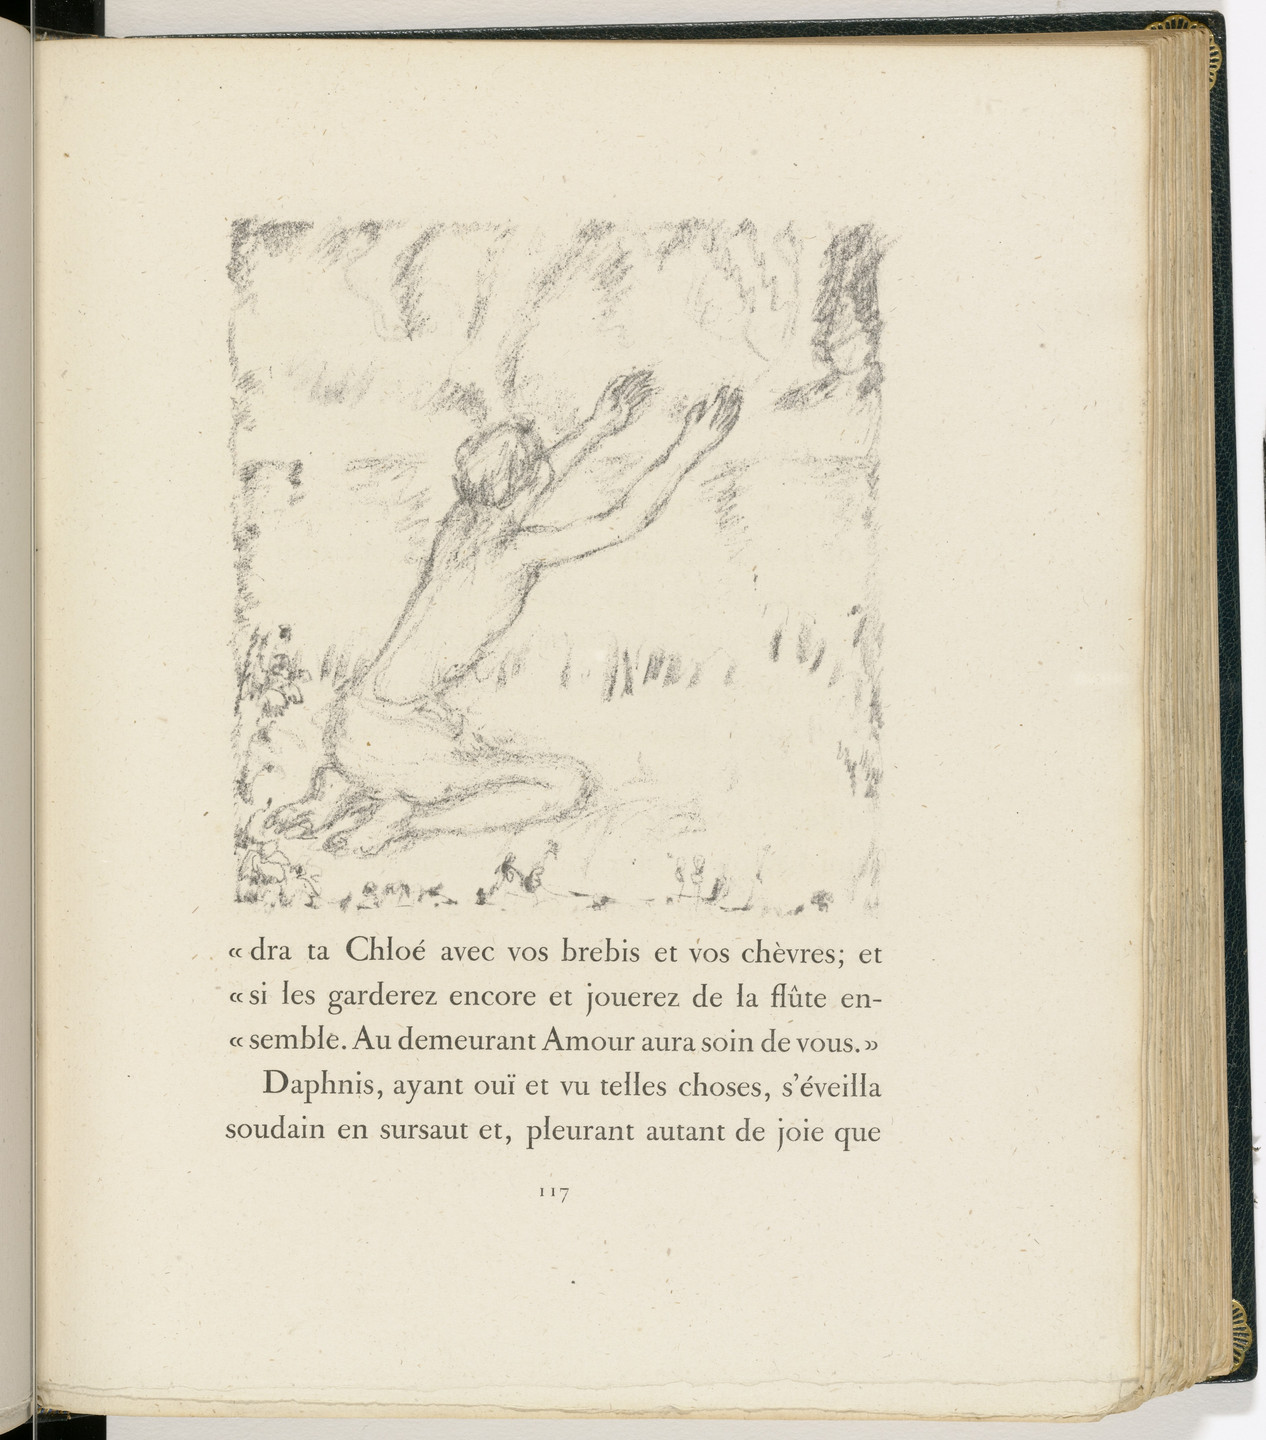 Pierre Bonnard. In-text plate (page 117) from Daphnis et Chloé. 1902